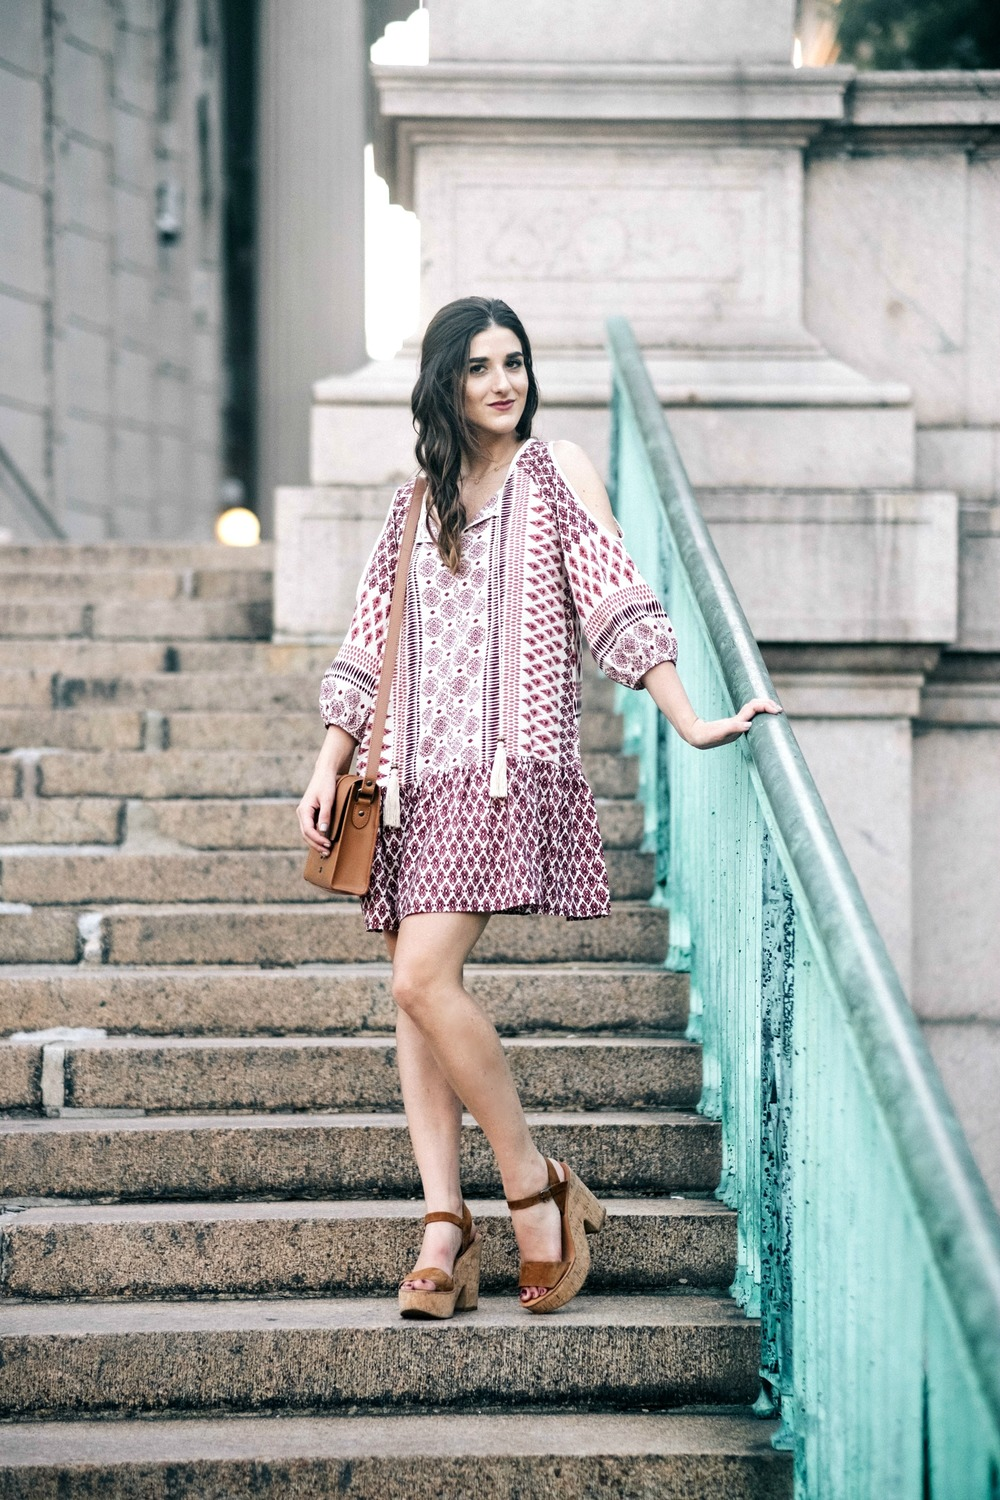 Printed Boho Dress West Kei Louboutins & Love Fashion Blog Esther Santer NYC Street Style Blogger Outfit OOTD Trendy Tassels Pattern Tan Crossbody Bag Elk Accessories Gold Choker Jewelry Jeweled Snake Bracelet Hair Inspo Dolce Vita Cork Wedges Summer.jpg